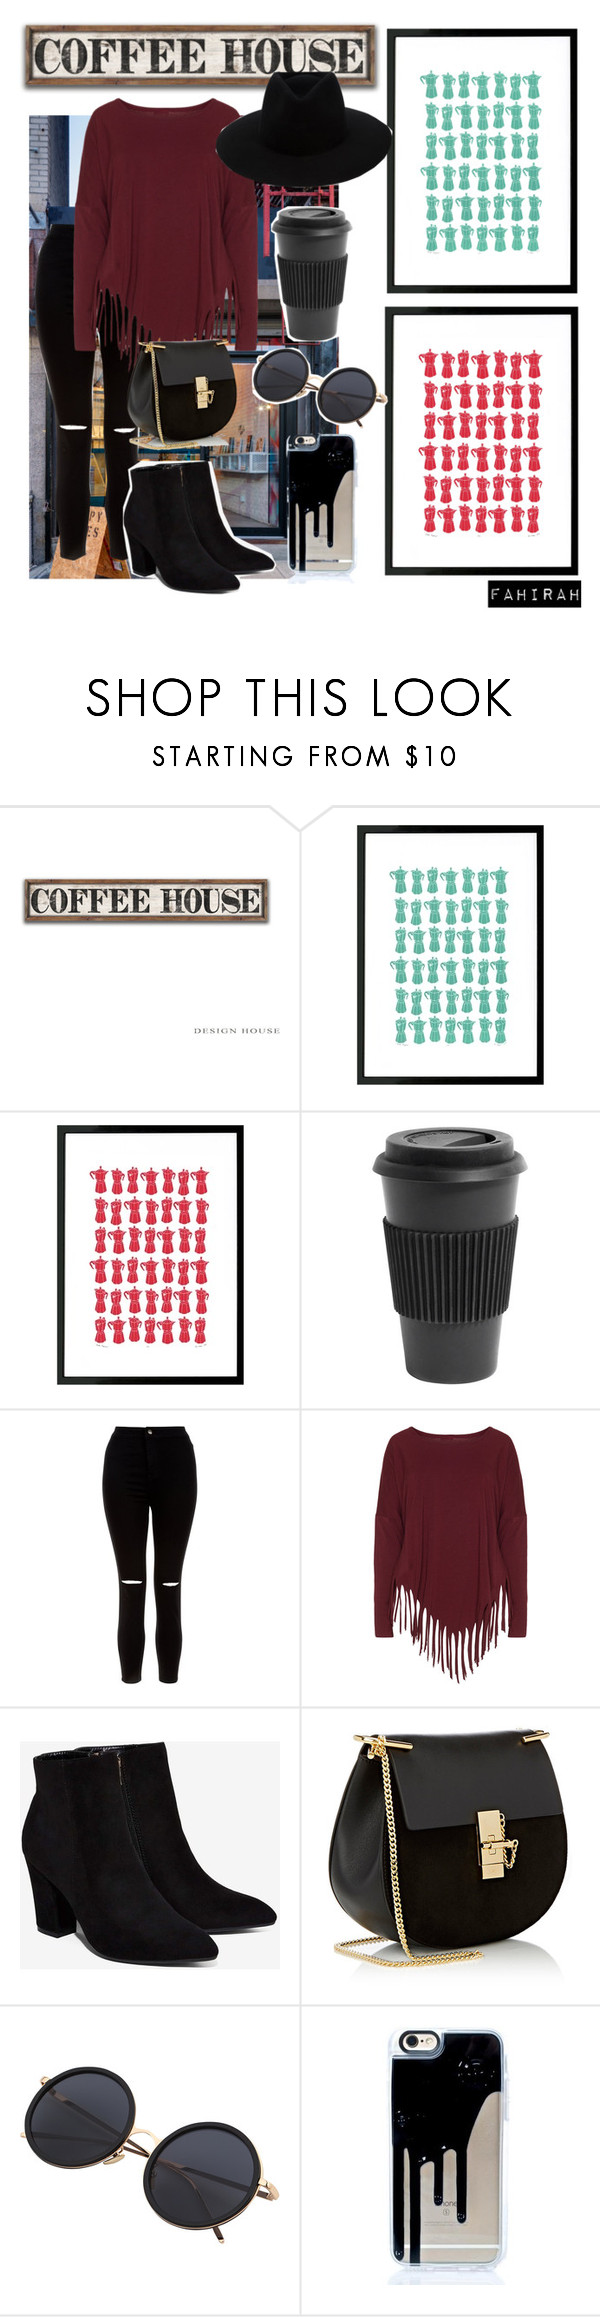 """""""Coffee Date"""" by fahirahsaid ❤ liked on Polyvore featuring Coffee Shop, Homage, New Look, Boris, Billini, Chloé and rag & bone"""